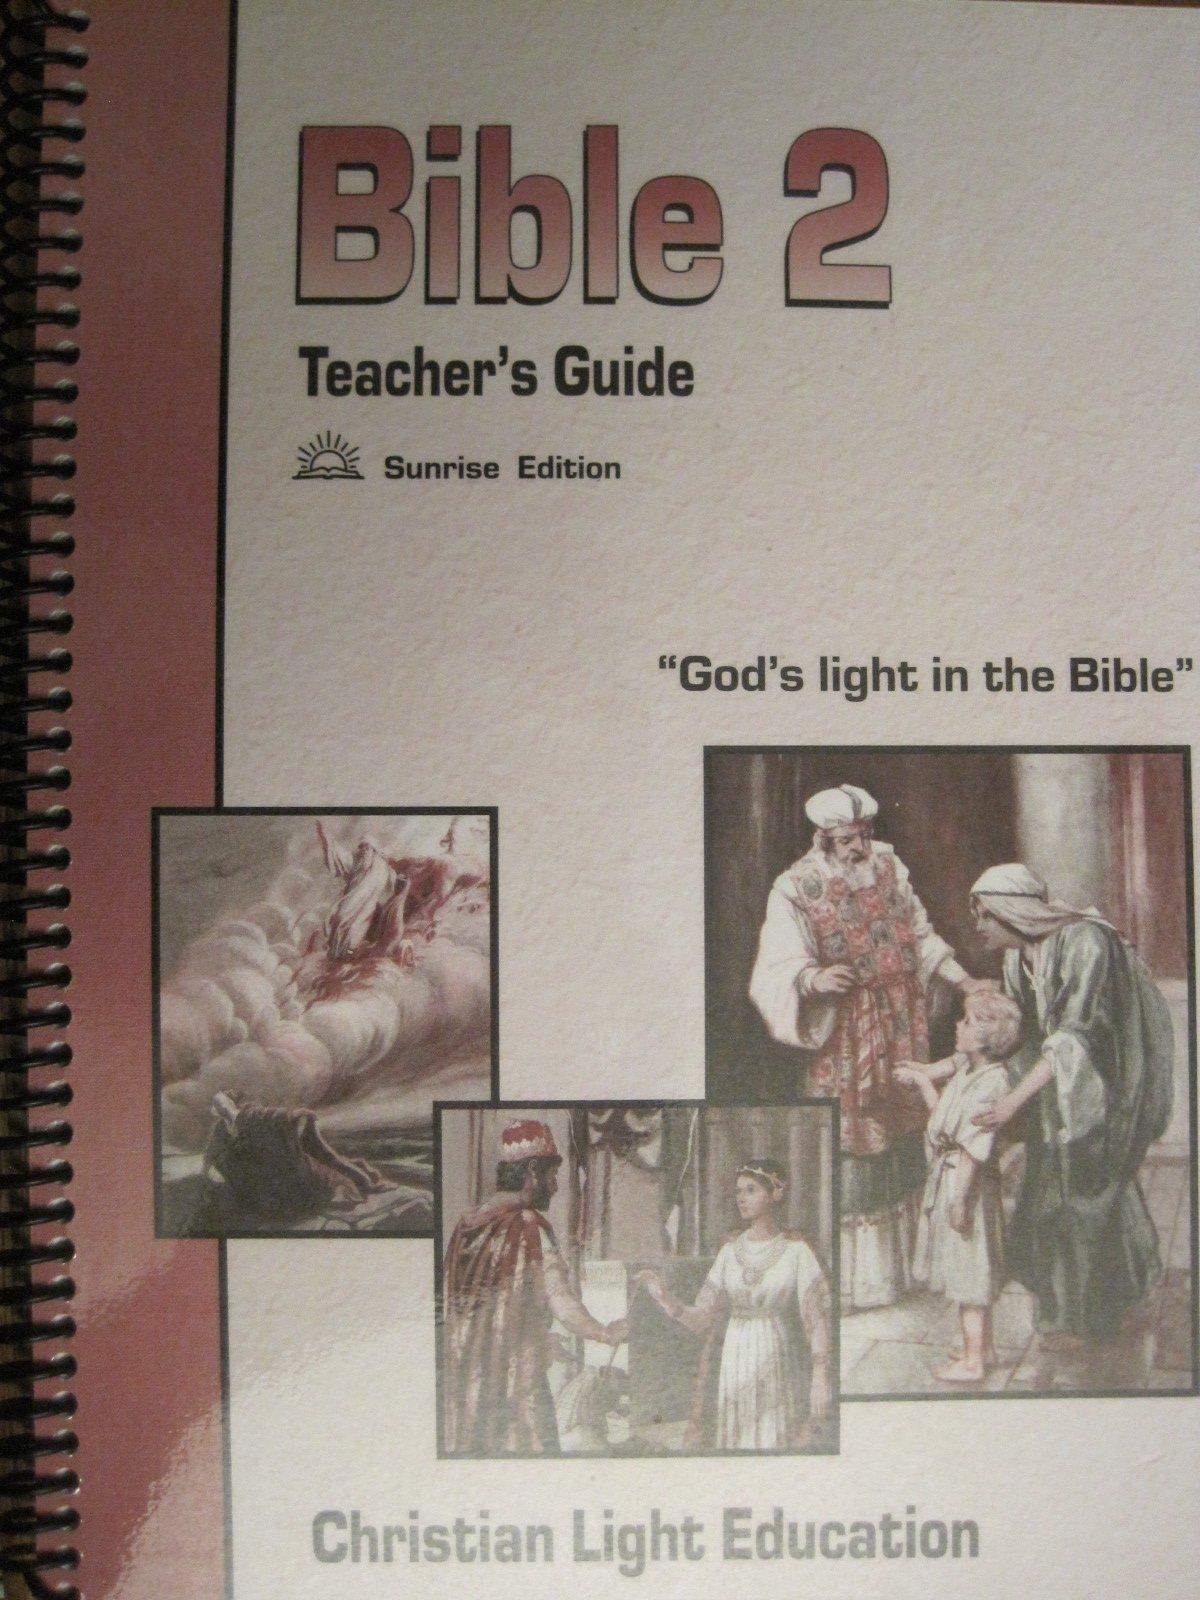 Bible 2 Teachers Guide Sunrise Edition Christian Light